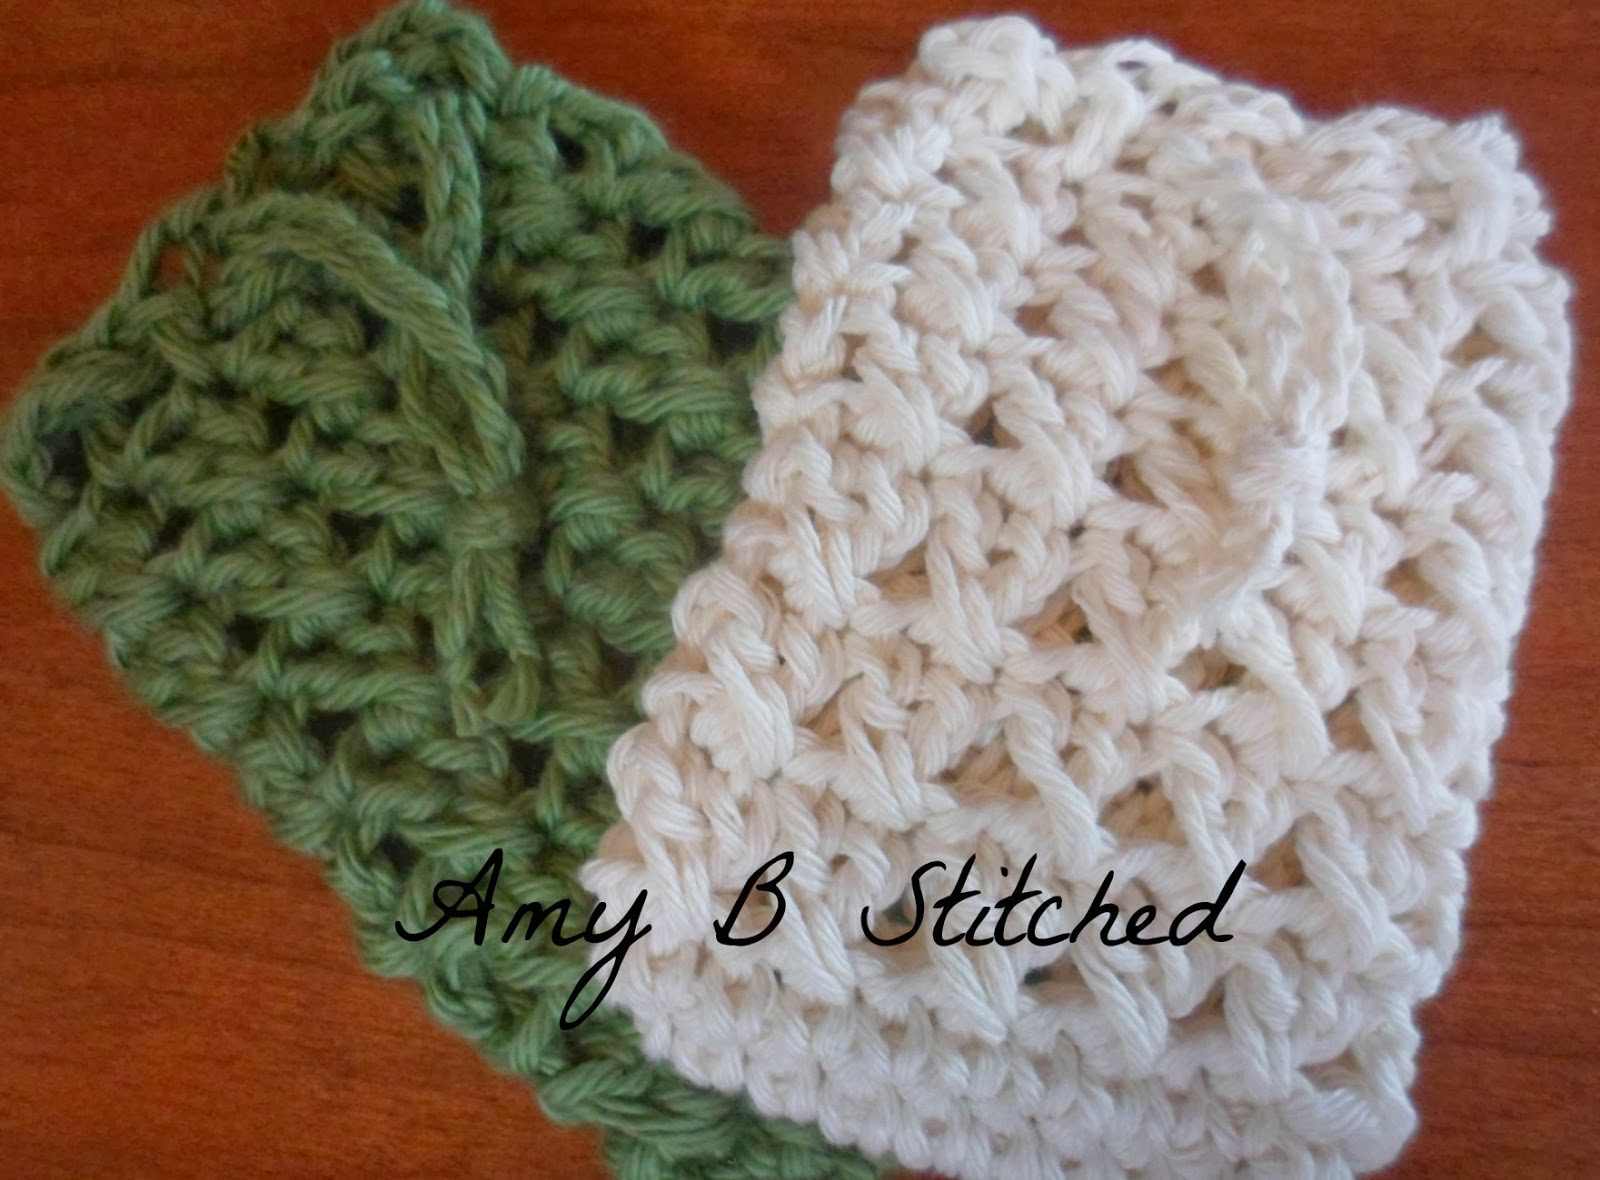 Free Crochet Patterns For Soap Bags : A Stitch At A Time for Amy B Stitched: Cross Stitch Soap ...